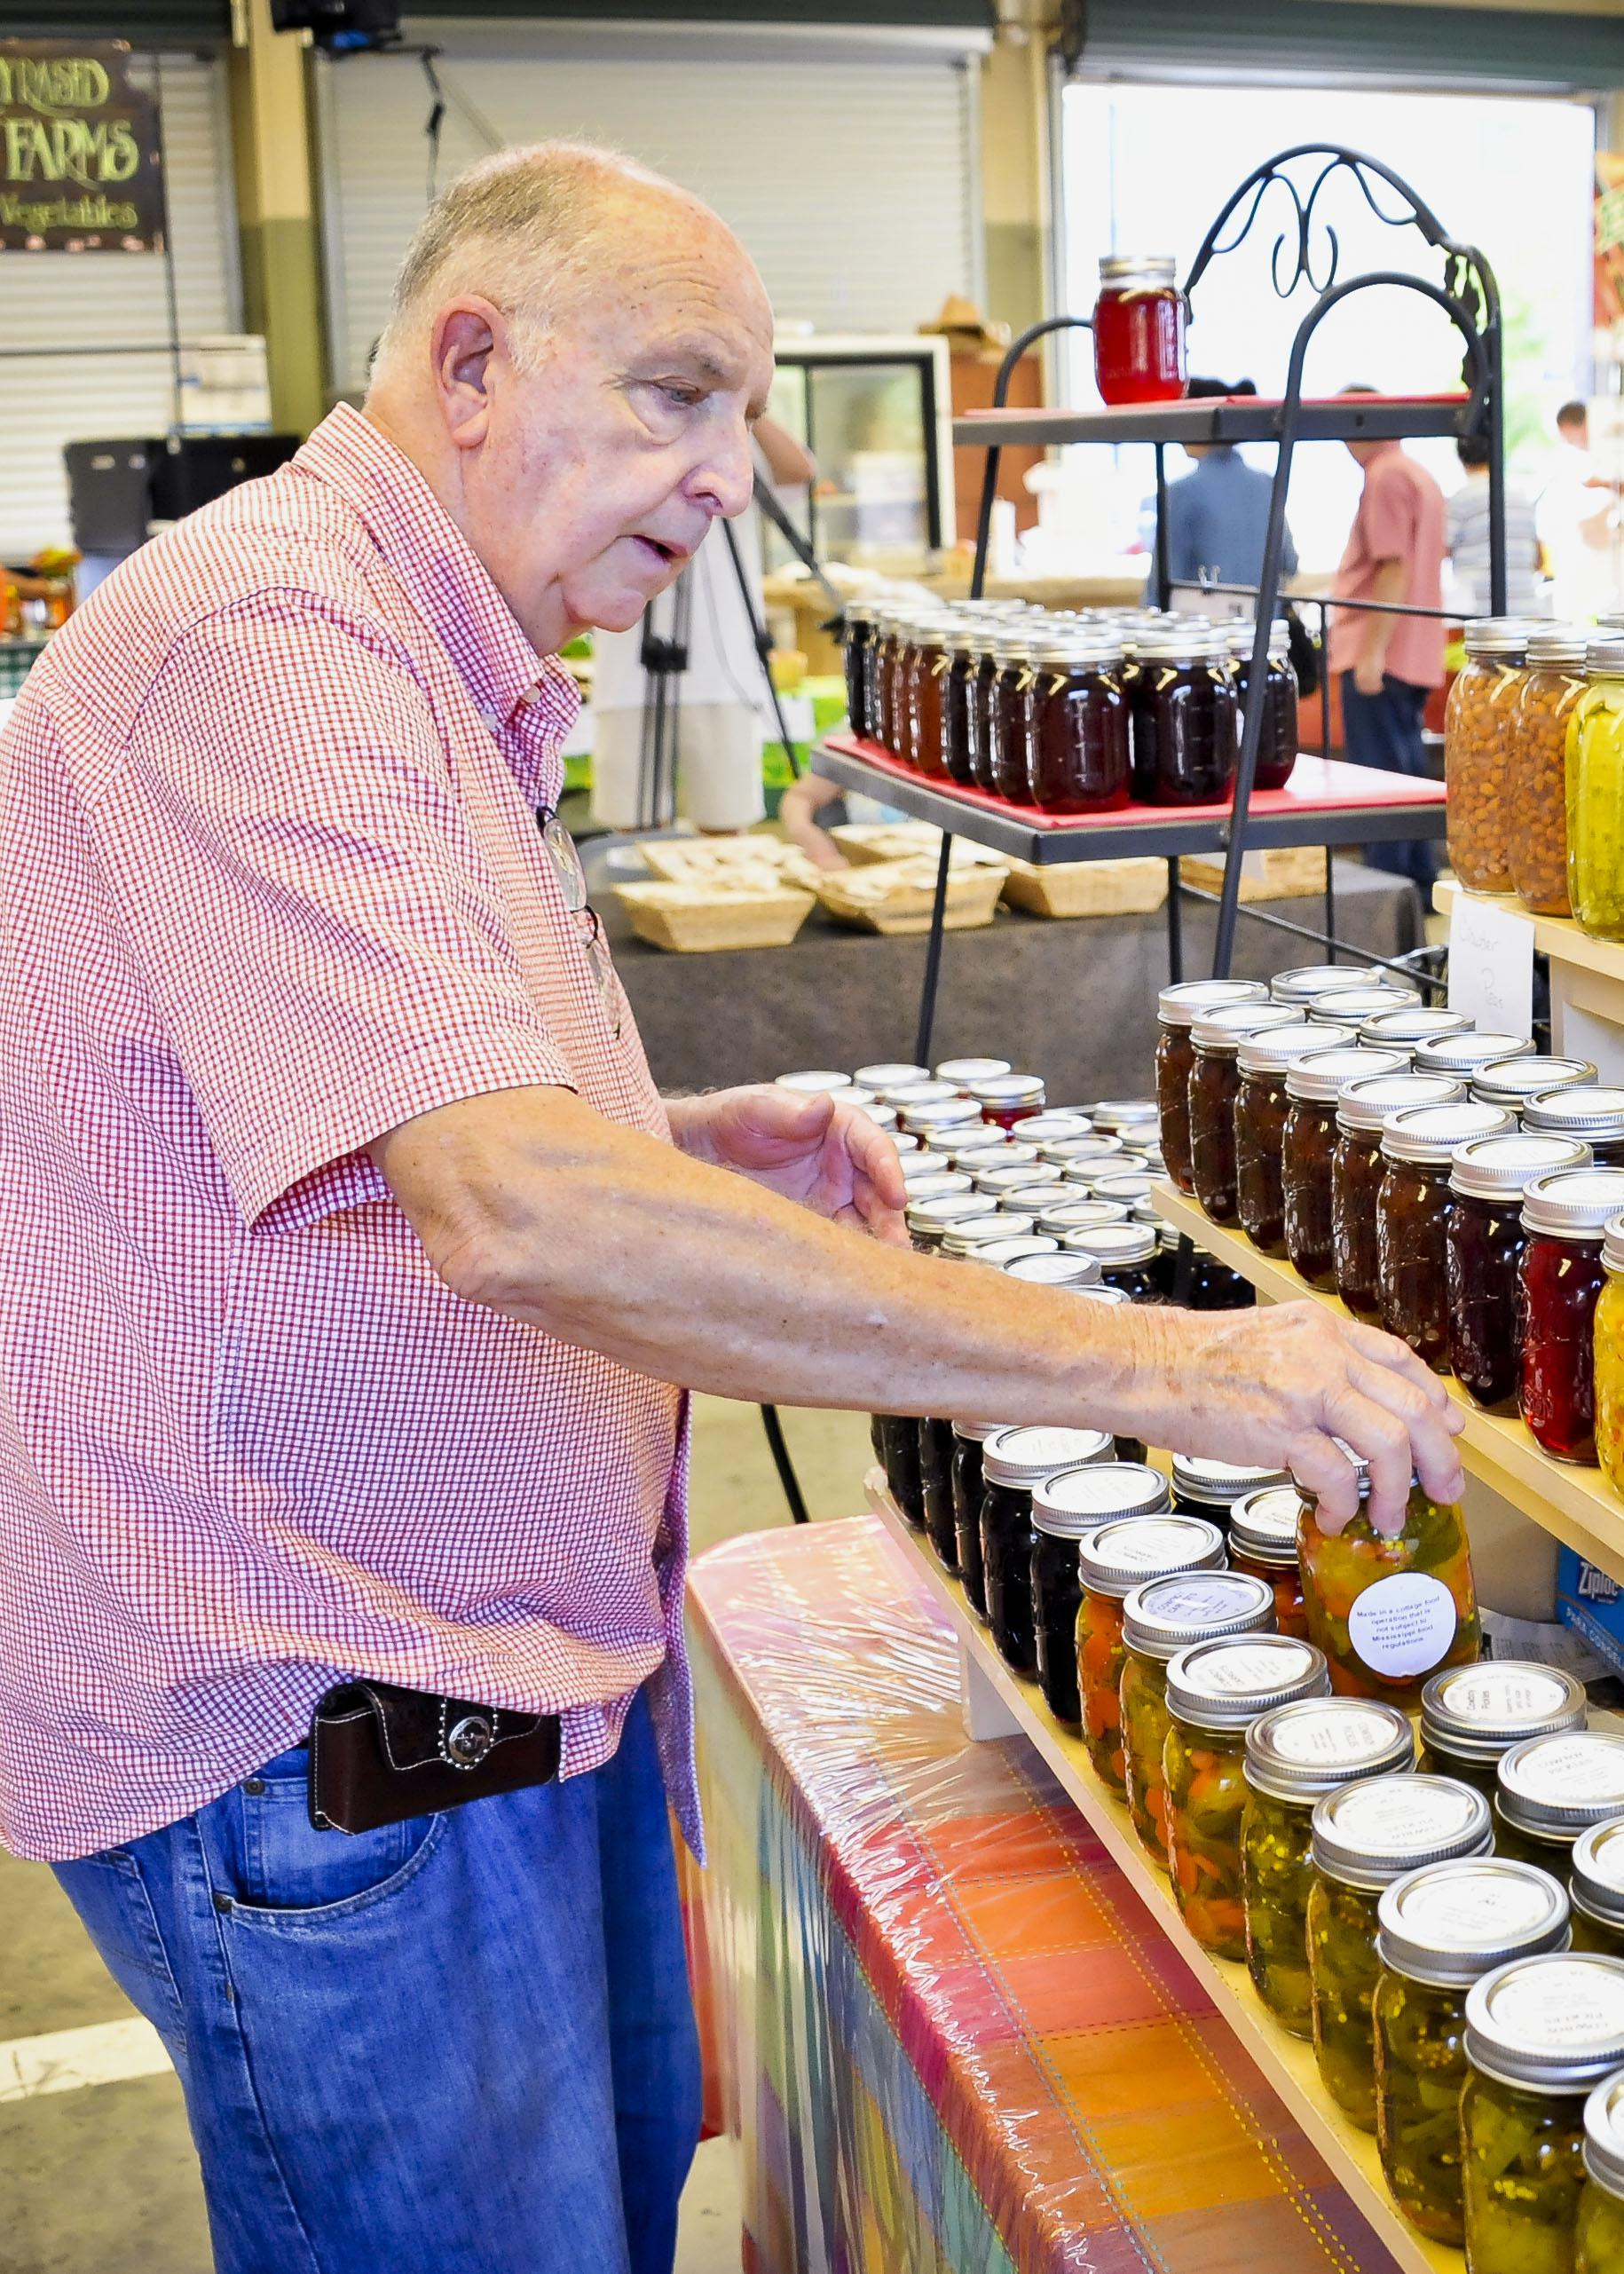 Claude Jones of Brandon sells canned and baked goods at the Mississippi Farmers Market in Jackson made in his home-based business, Old Fashioned Taste. (Photo by MSU Ag Communications/Scott Corey)